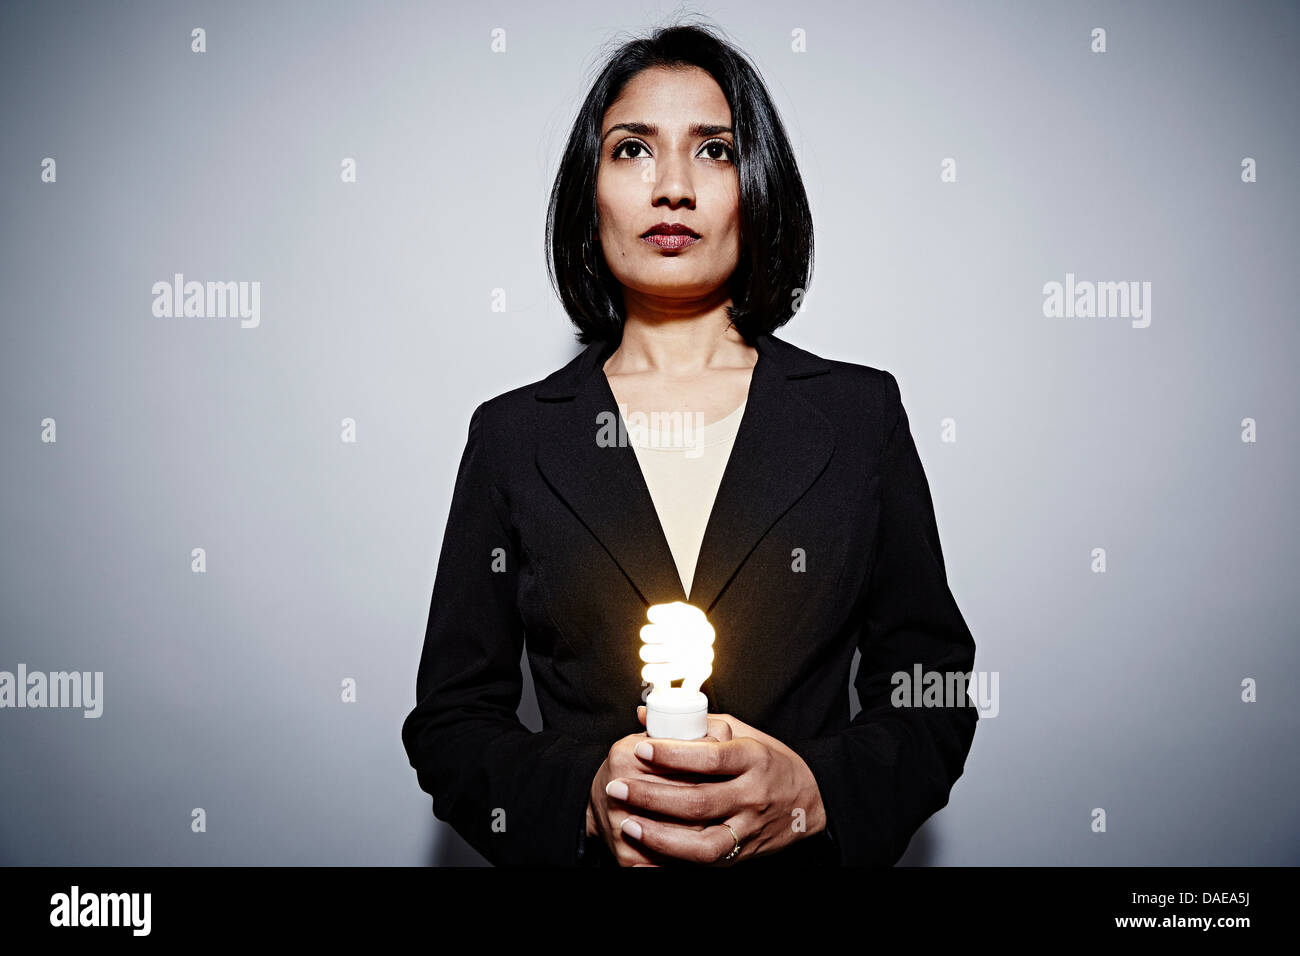 Studio portrait of businesswoman holding energy saving lightbulb - Stock Image